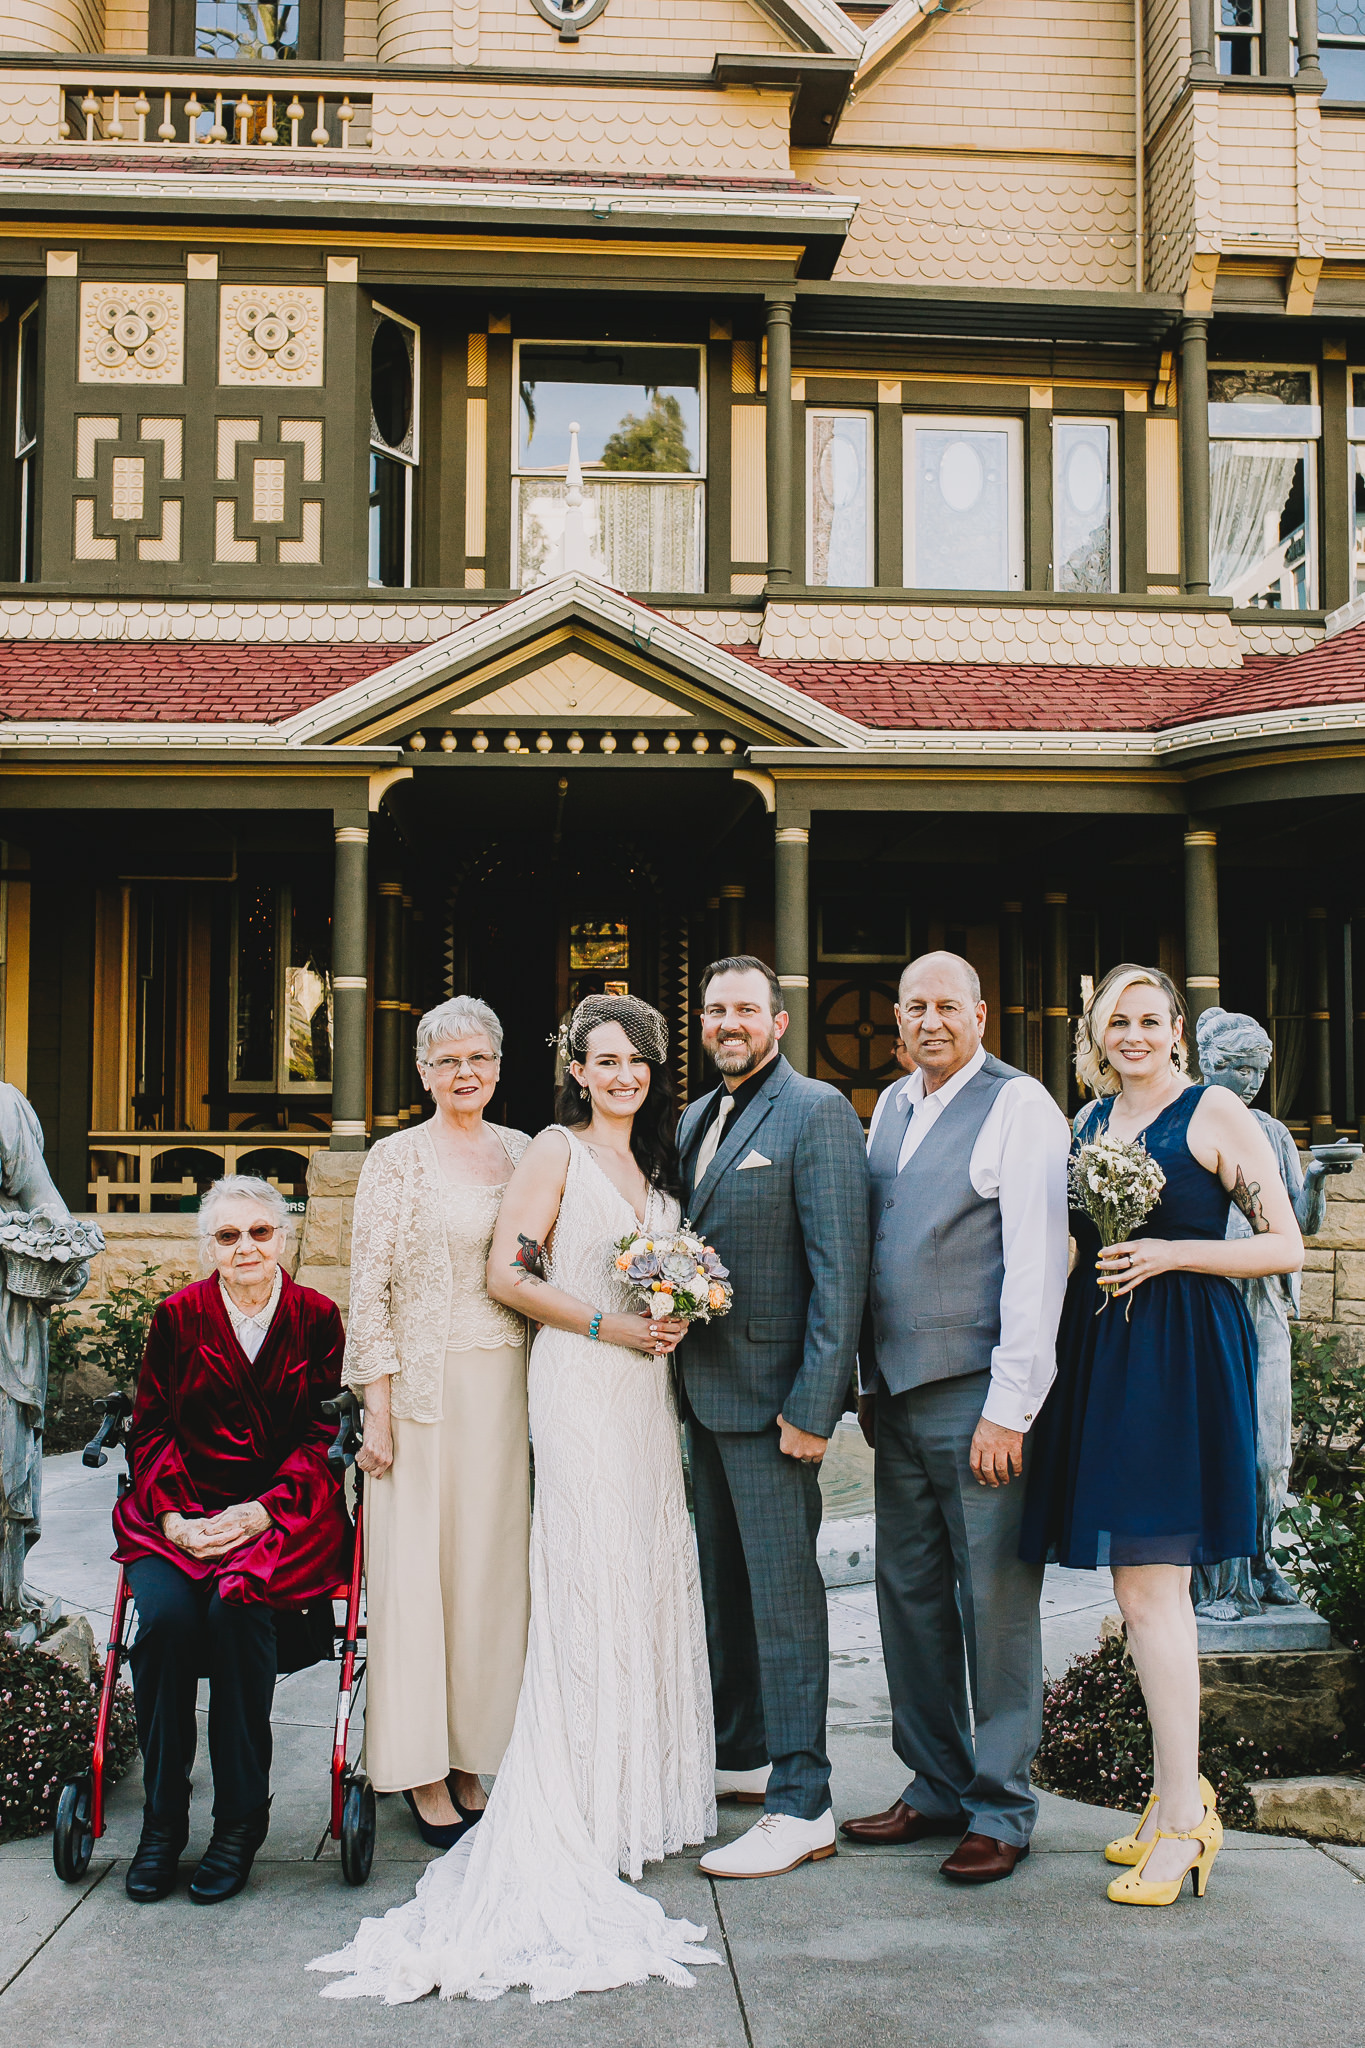 Archer Inspired Photography Sara and Aaron Winchester Mystery House NorCal San Jose California Wedding Photographer-219.jpg